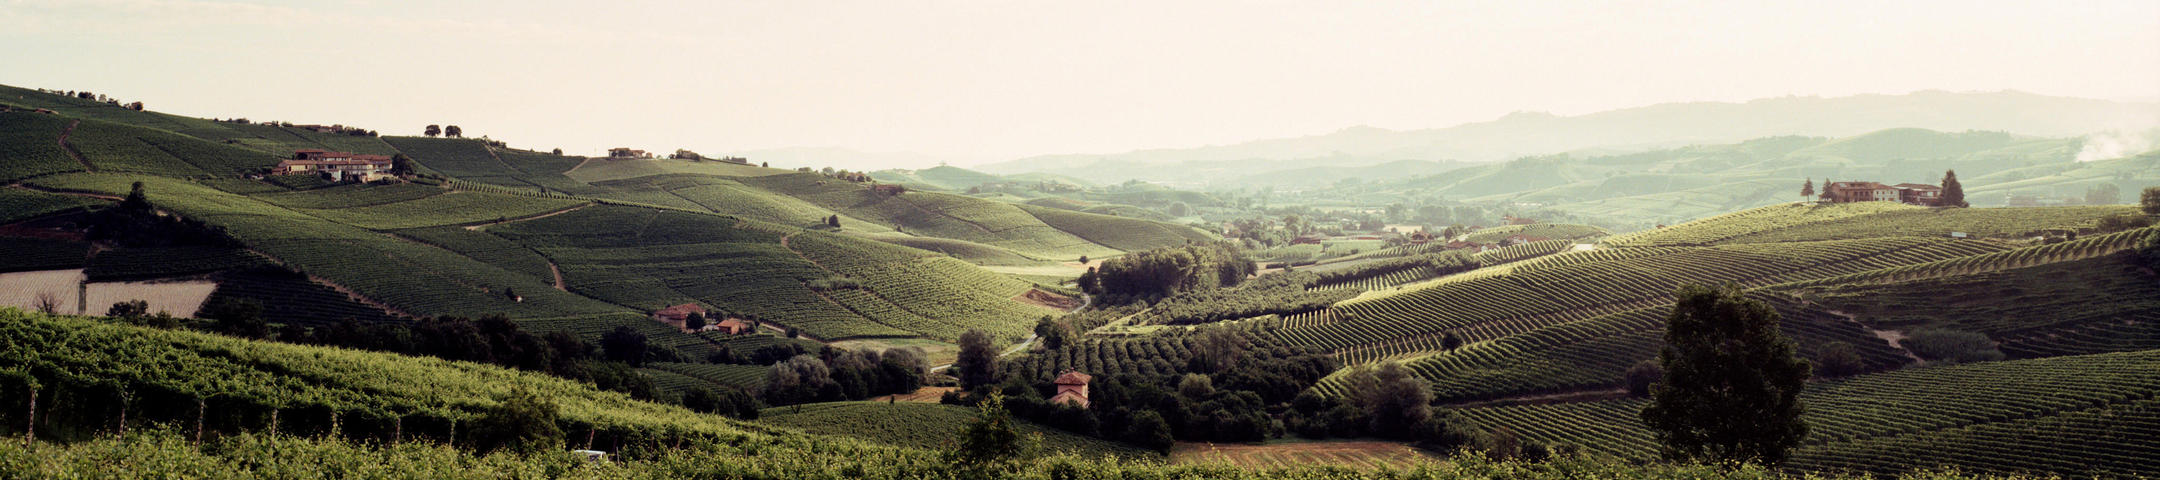 Getting to grips with Piedmont _